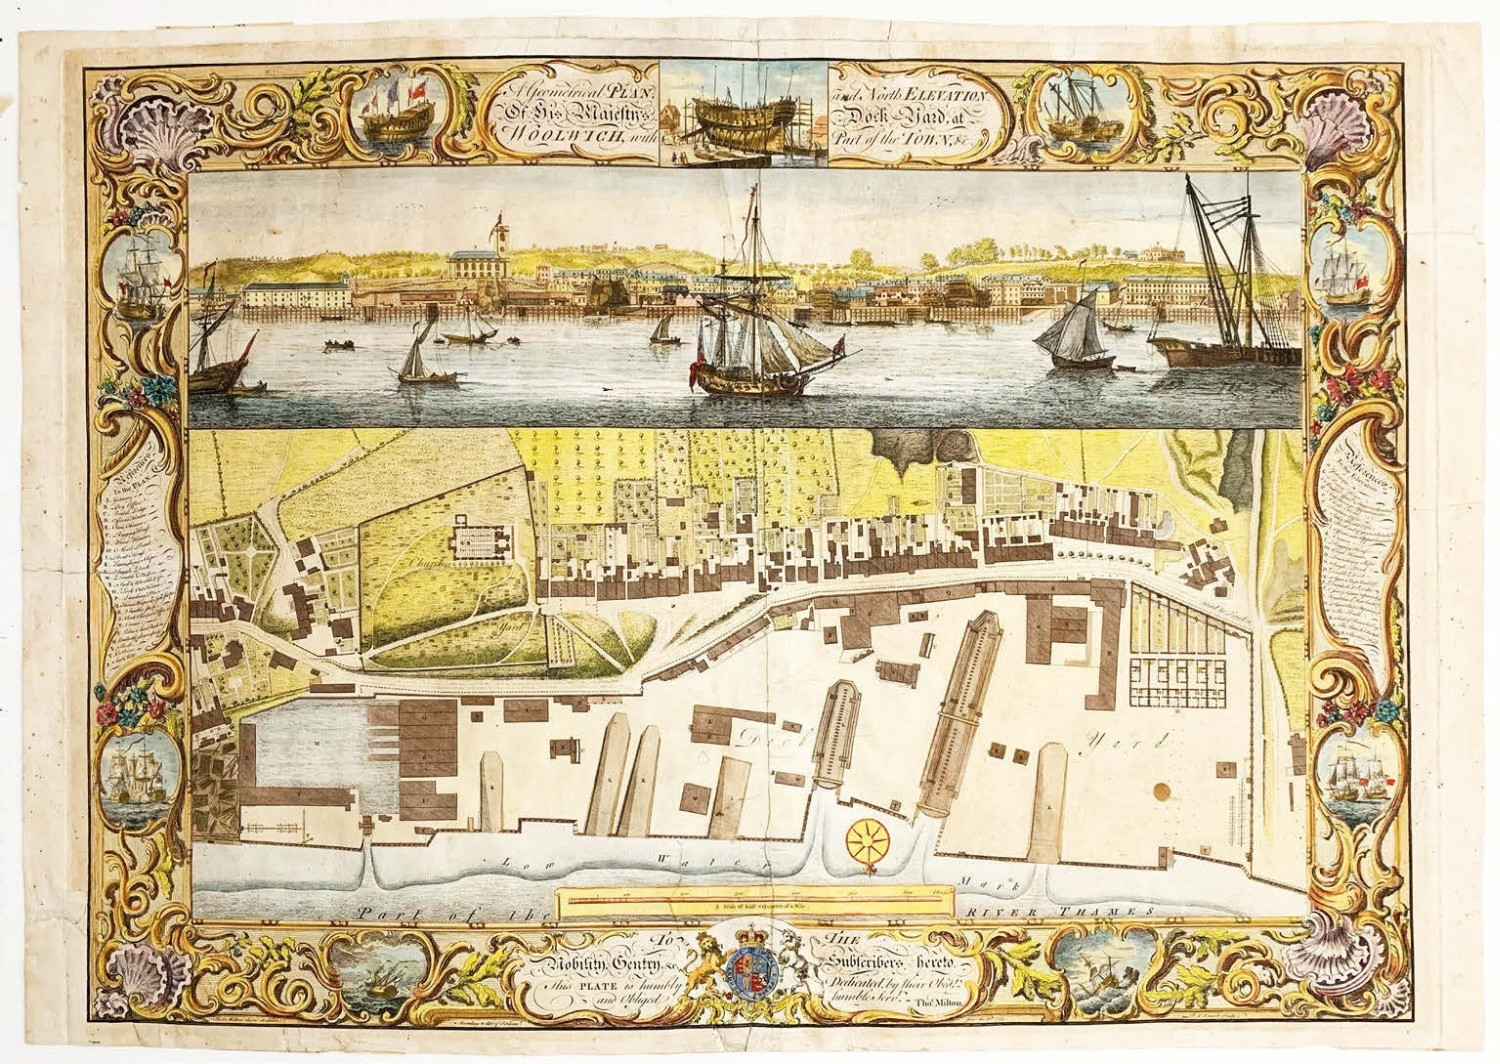 Pick of the week: 18th century dockyard plans detailing the